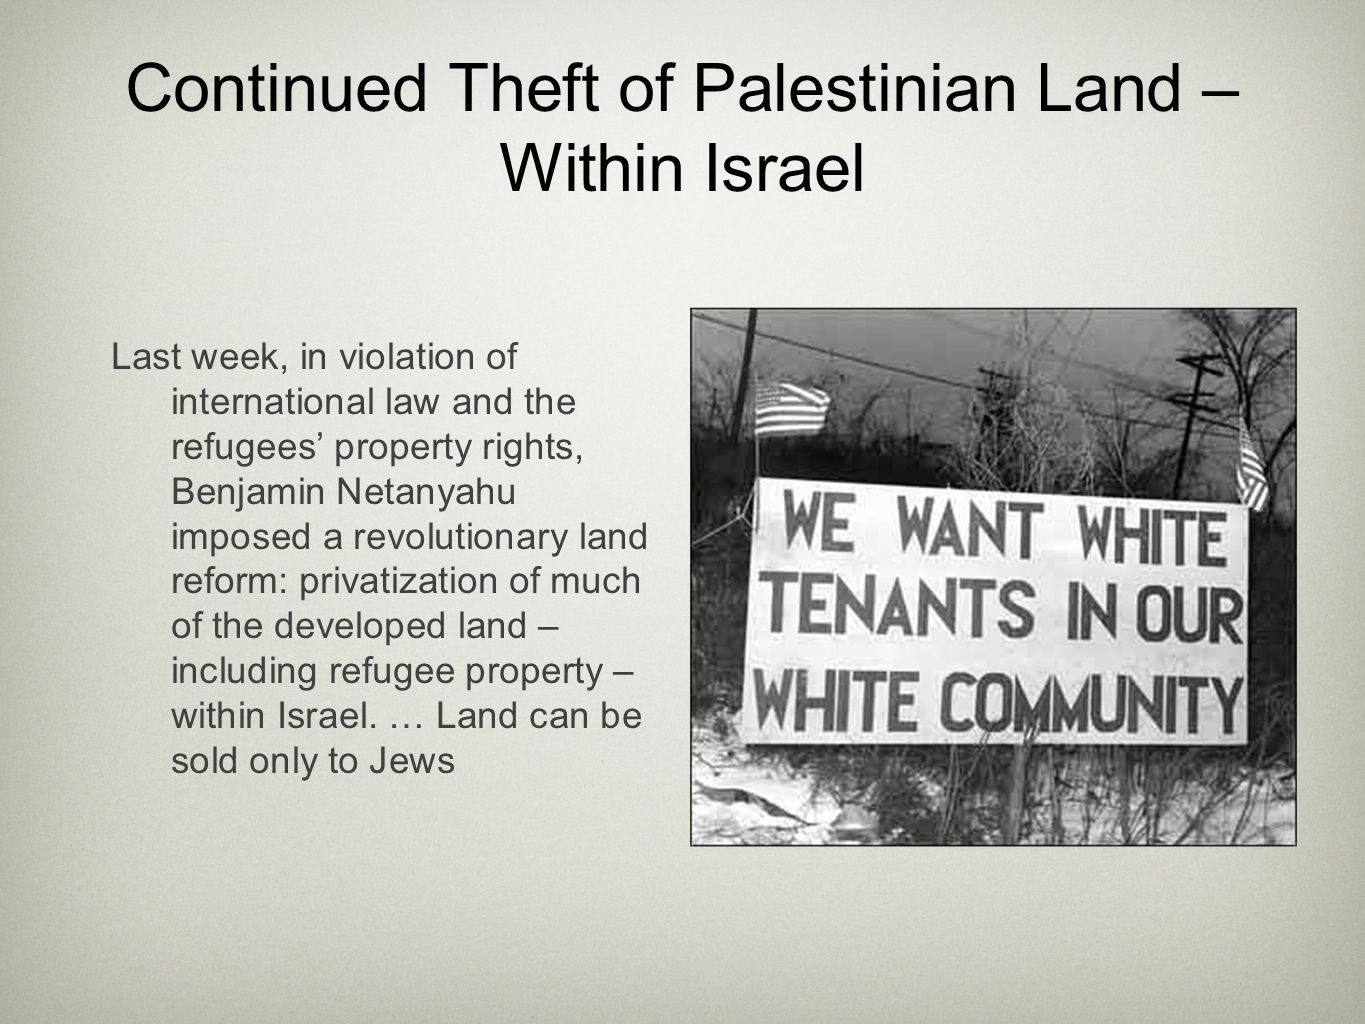 Continued Theft of Palestinian Land – Within Israel Last week, in violation of international law and the refugees' property rights, Benjamin Netanyahu imposed a revolutionary land reform: privatization of much of the developed land – including refugee property – within Israel.